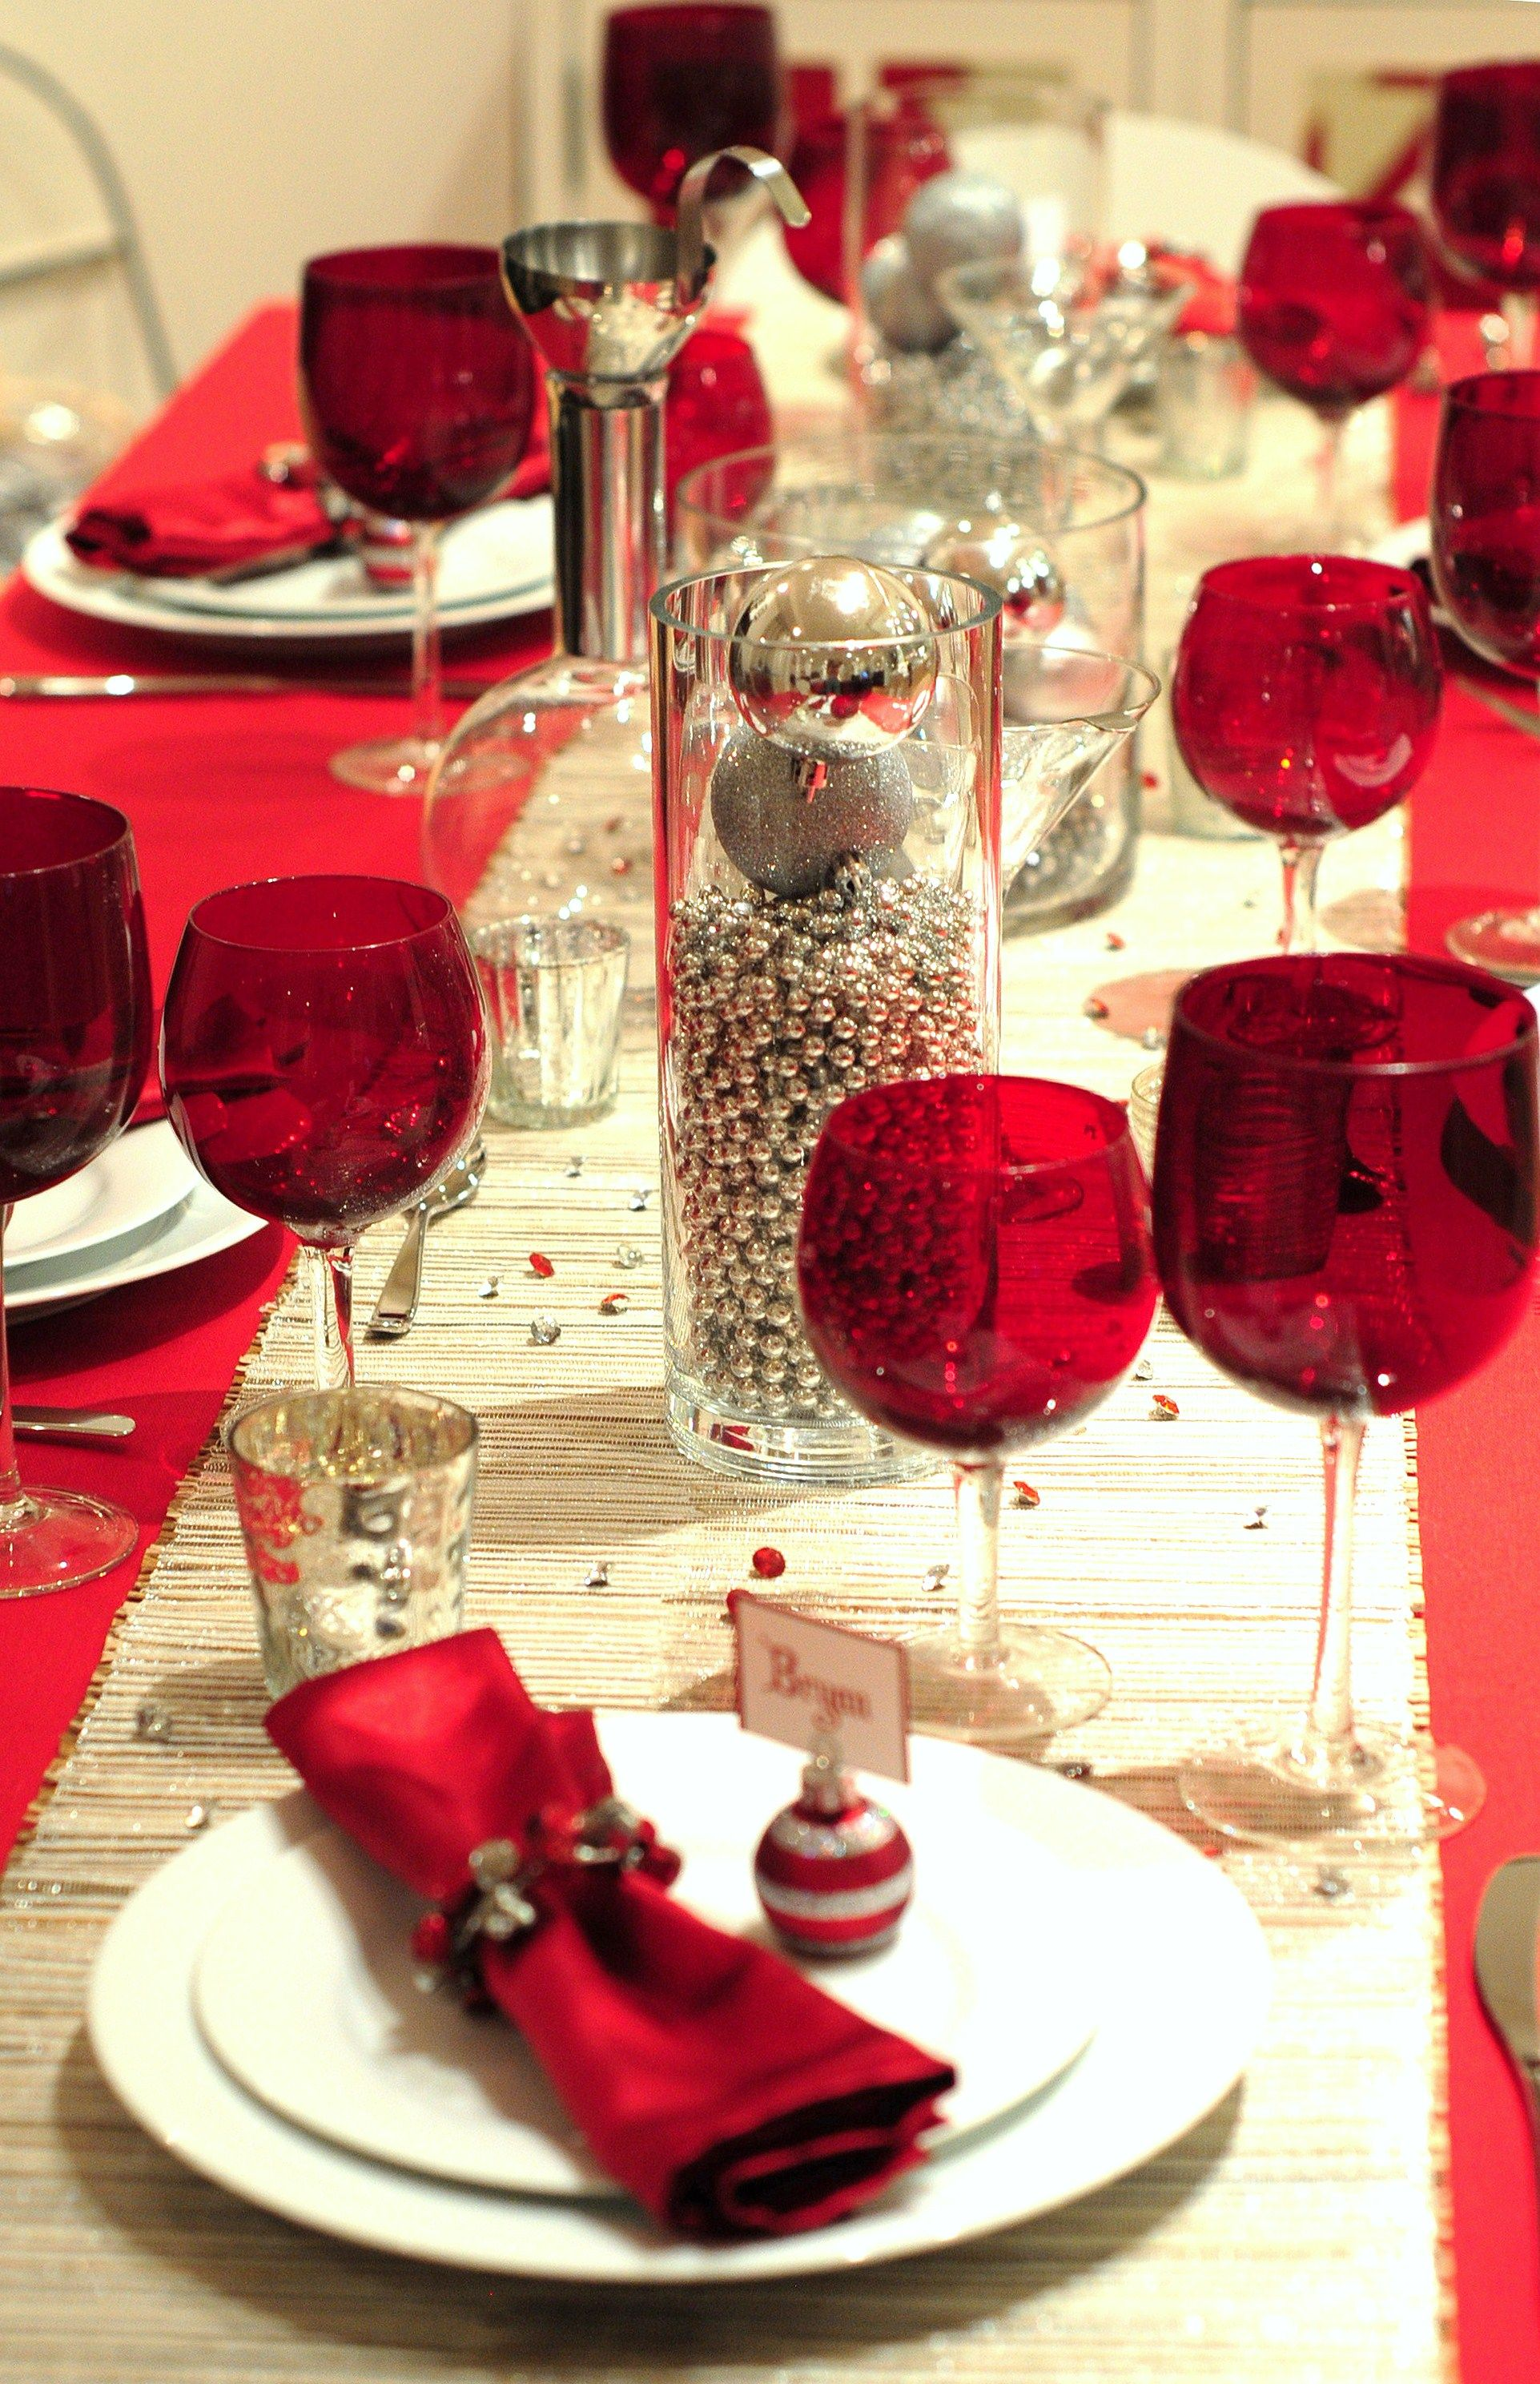 Christmas table setting ask for red wine glasses dream for Easy table setting ideas for christmas